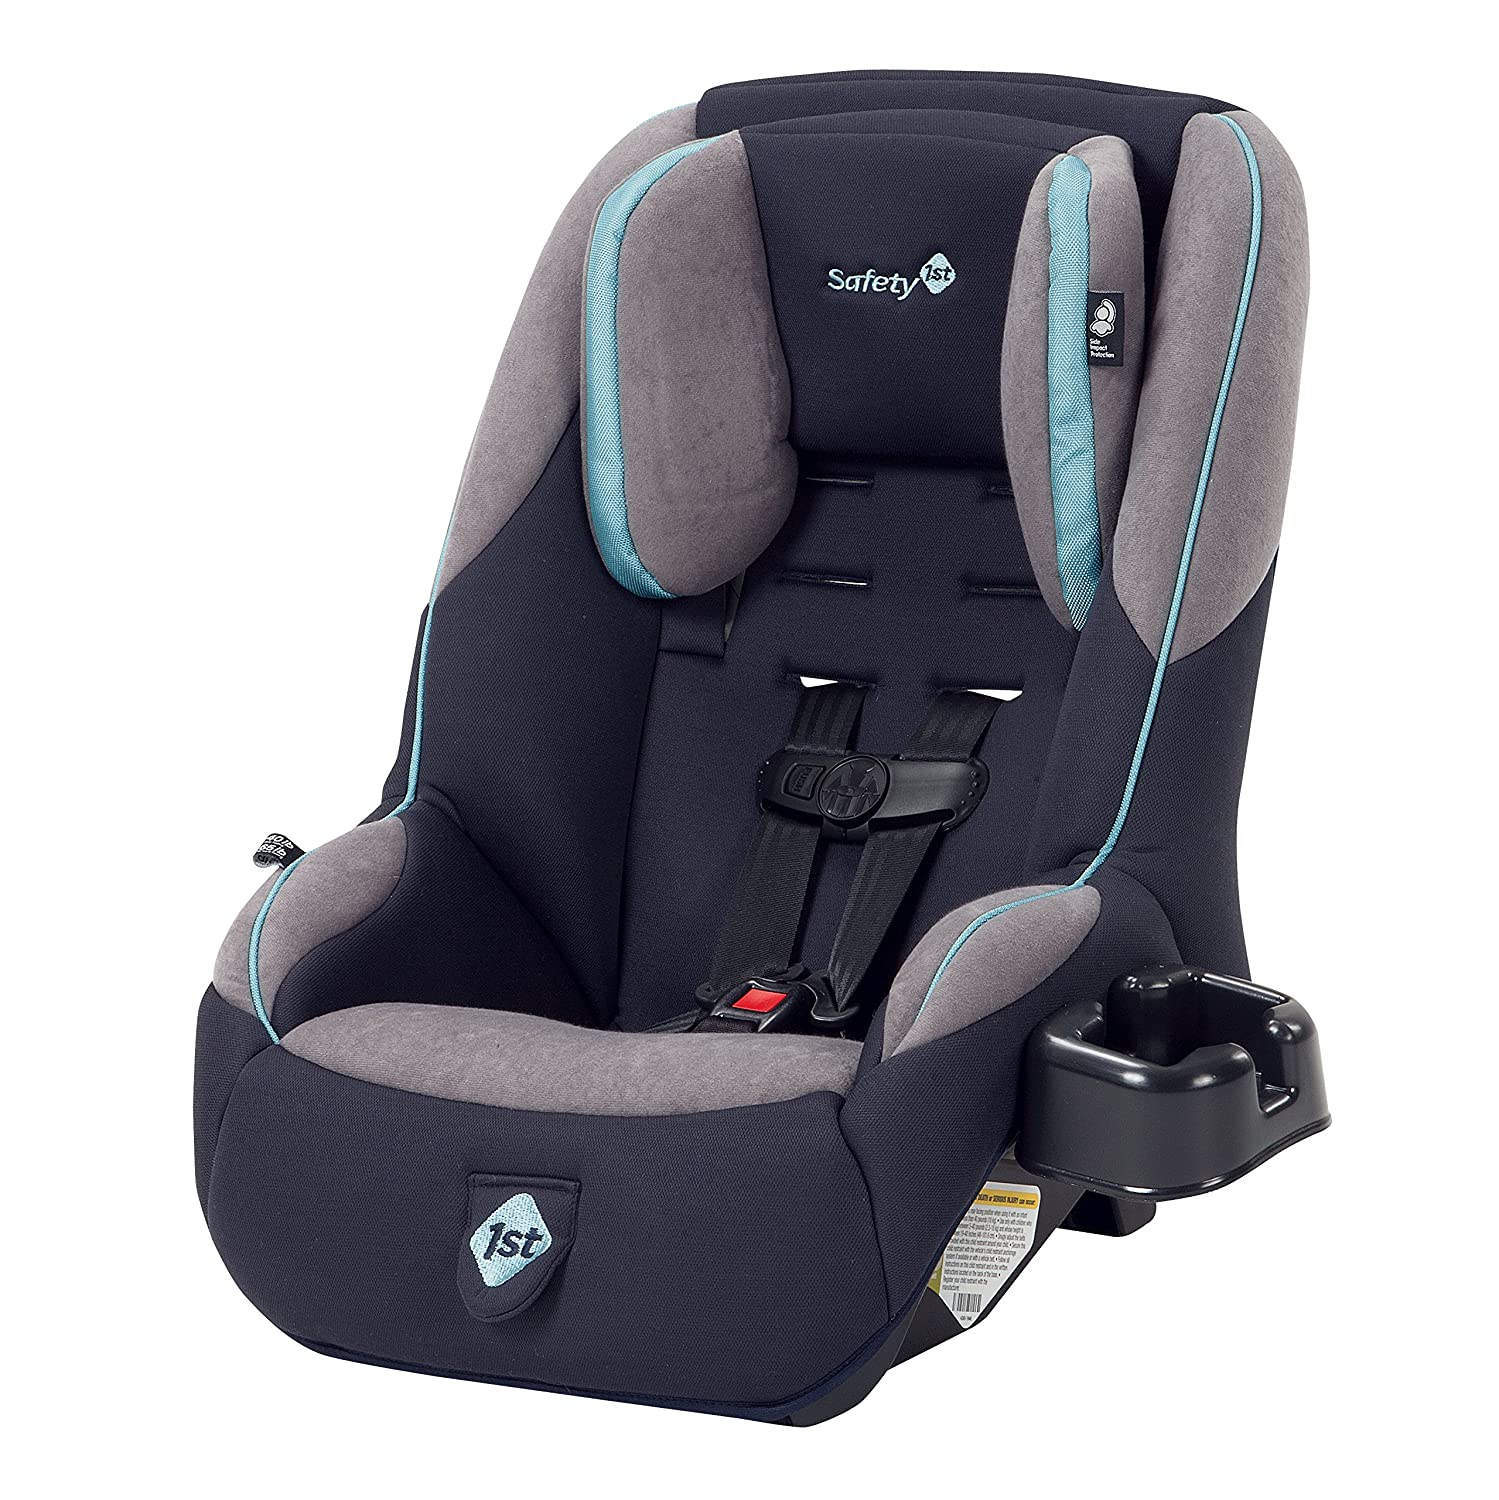 Amazon.com : Safety 1st Guide 65 Sport Convertible Car Seat ...